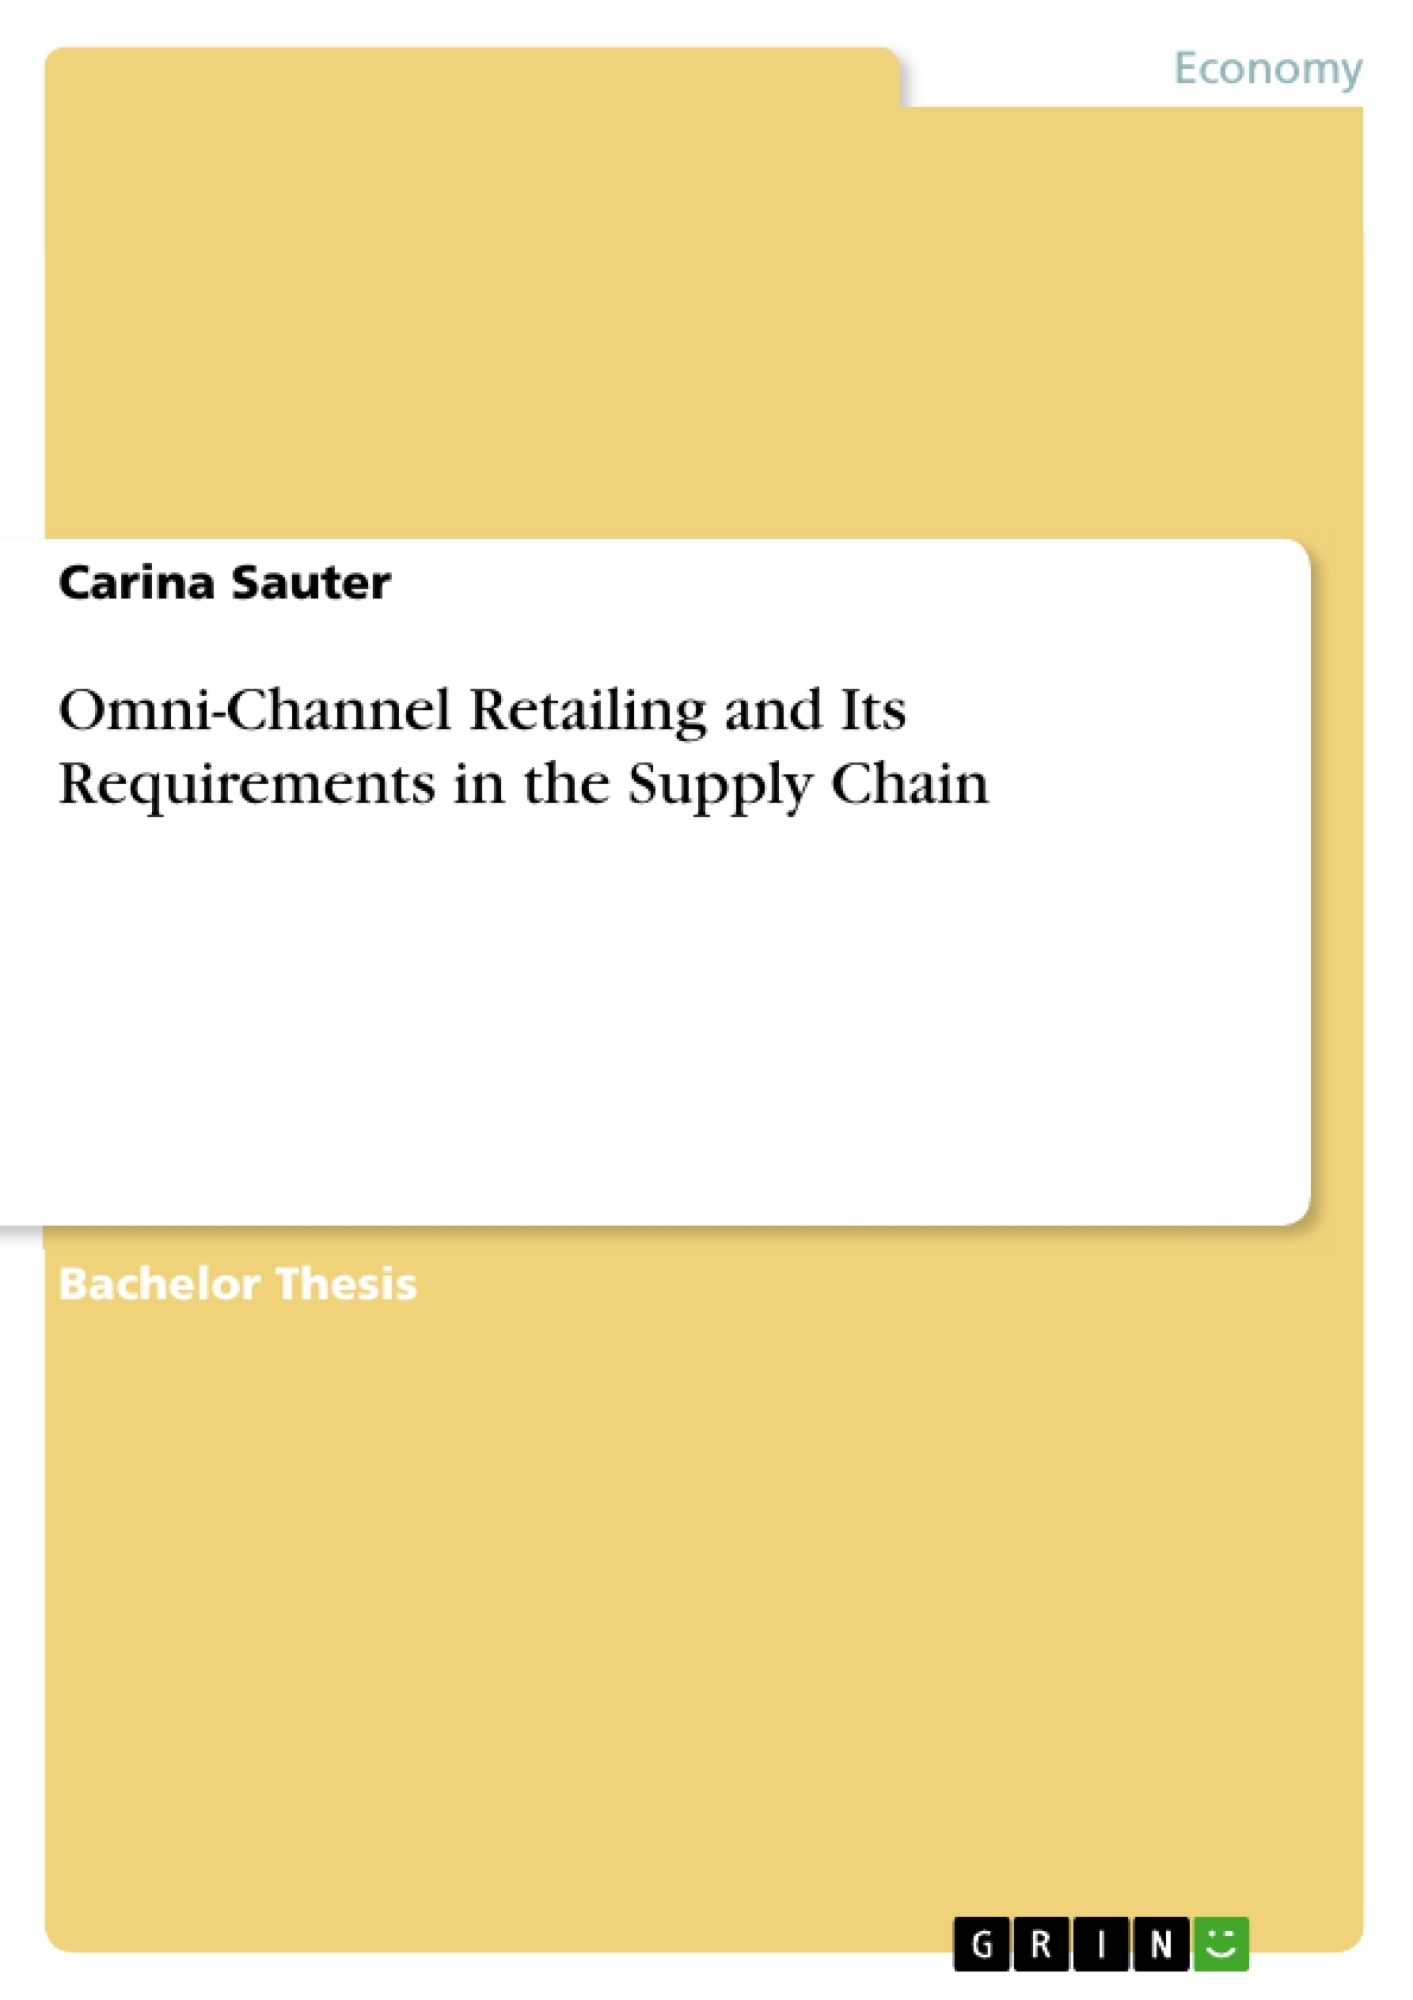 Title: Omni-Channel Retailing and Its Requirements in the Supply Chain